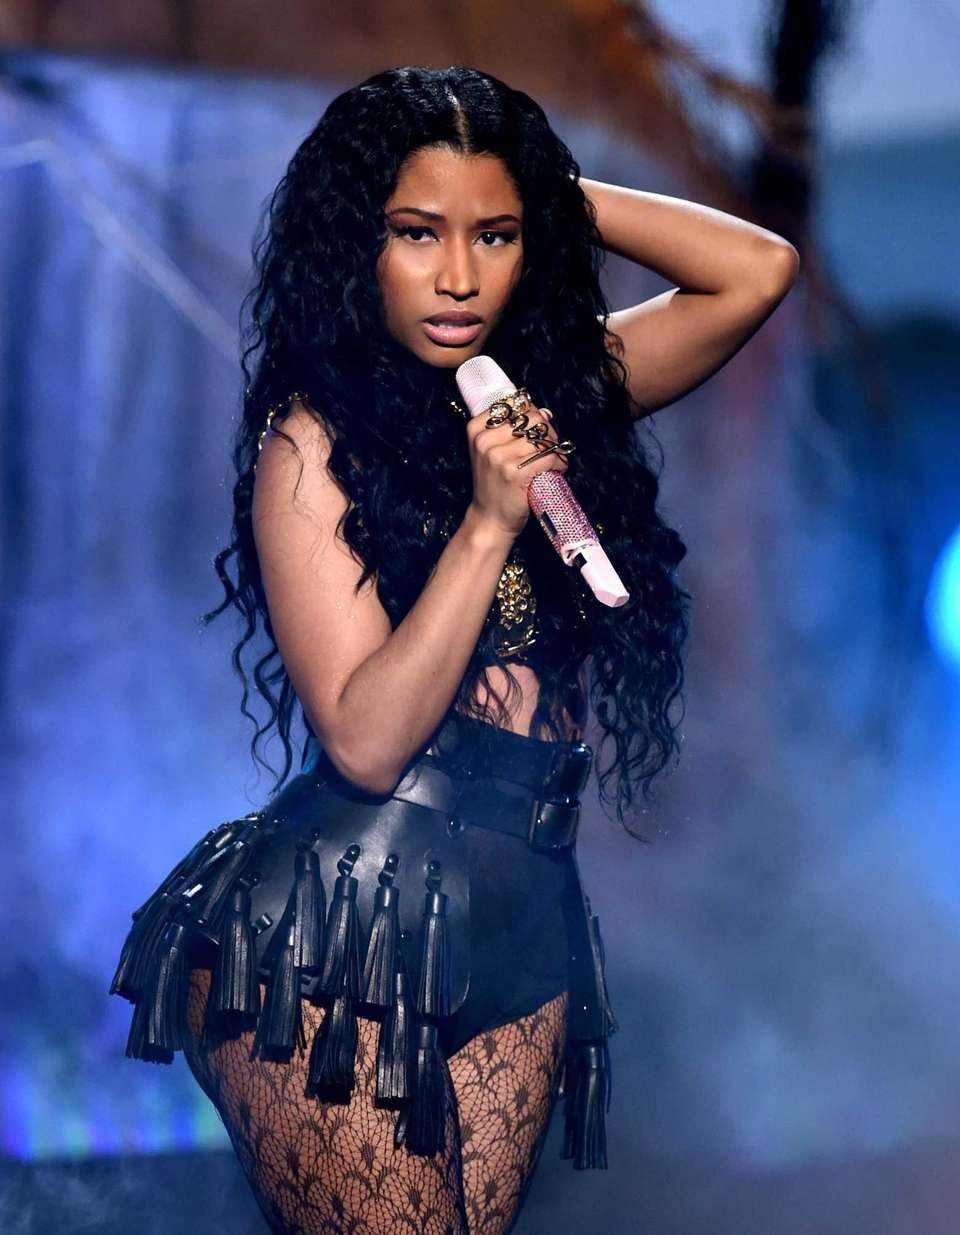 Nicki Minaj performs during the BET Awards at